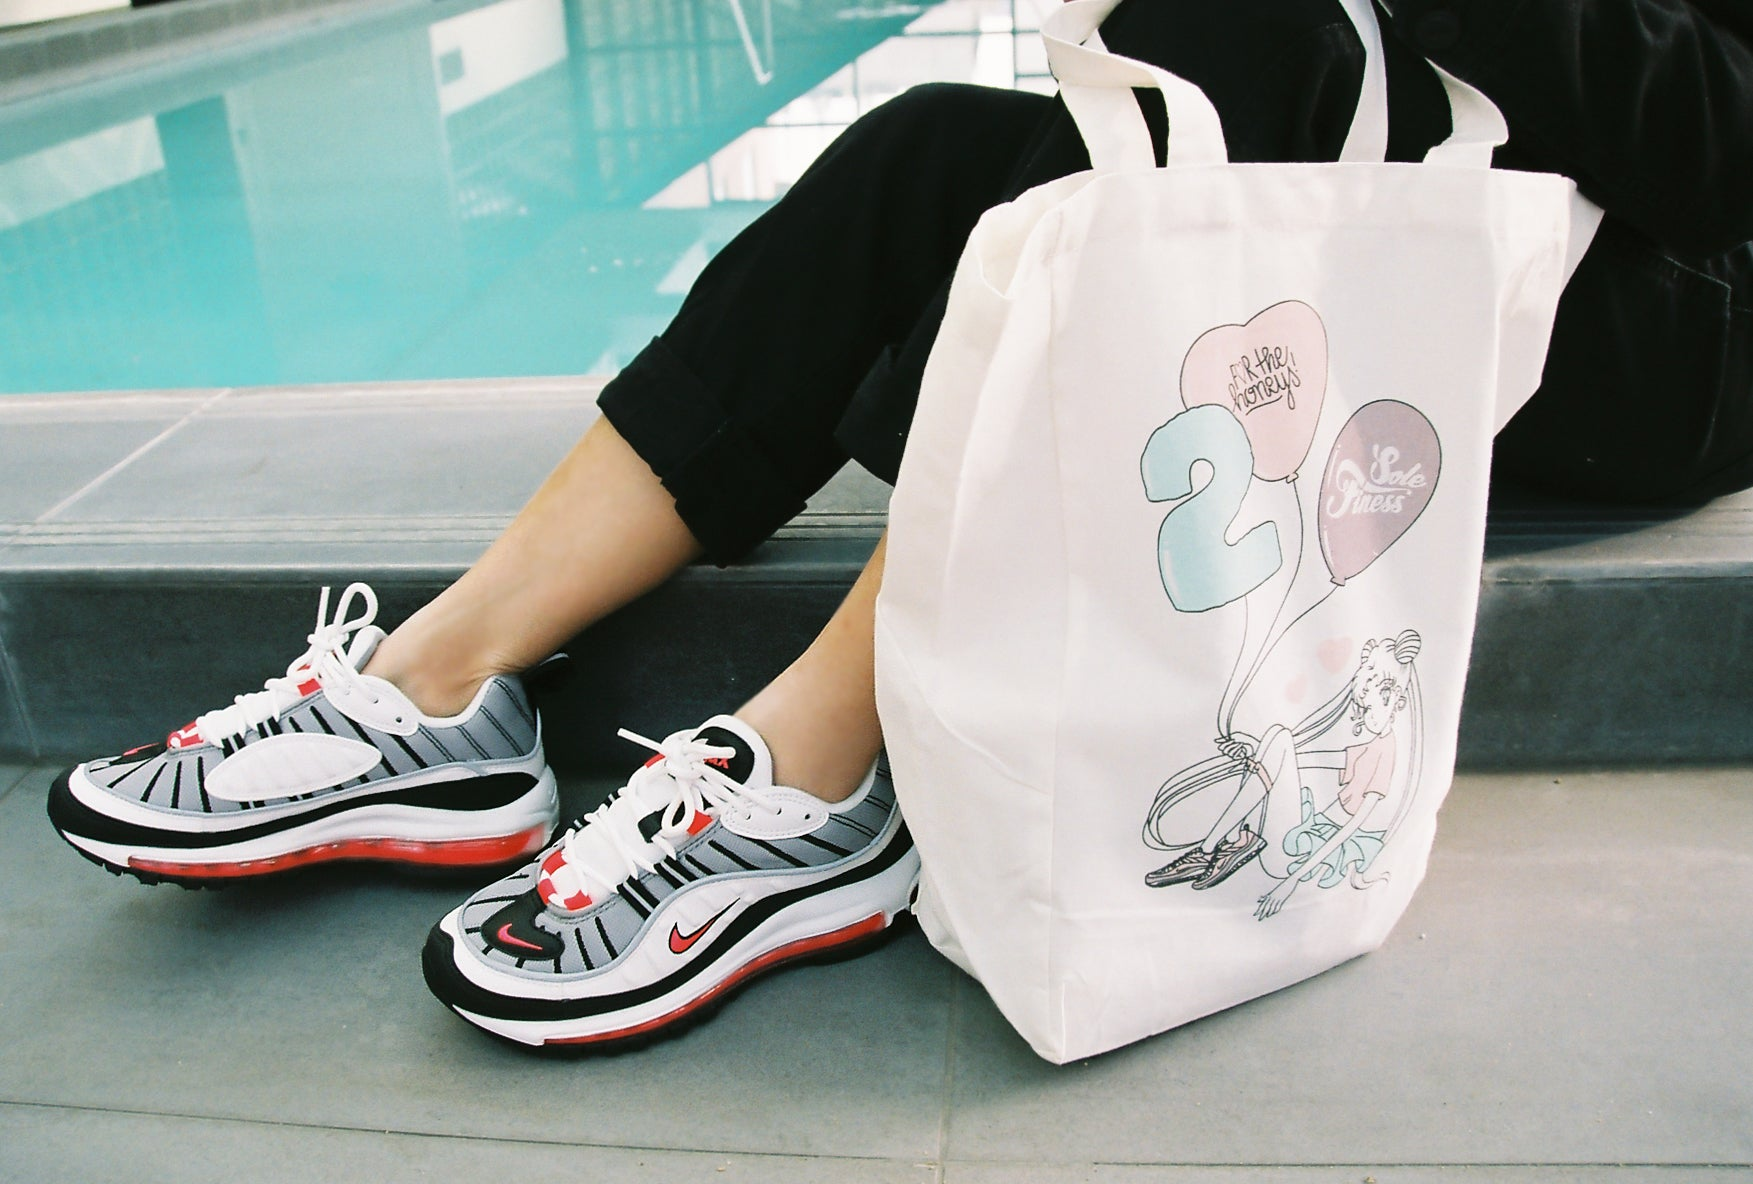 c7f6e12a0d Nike Air Max 98 Solar Red   June 1st   SNEAKER RELEASES   SOLE FINESS